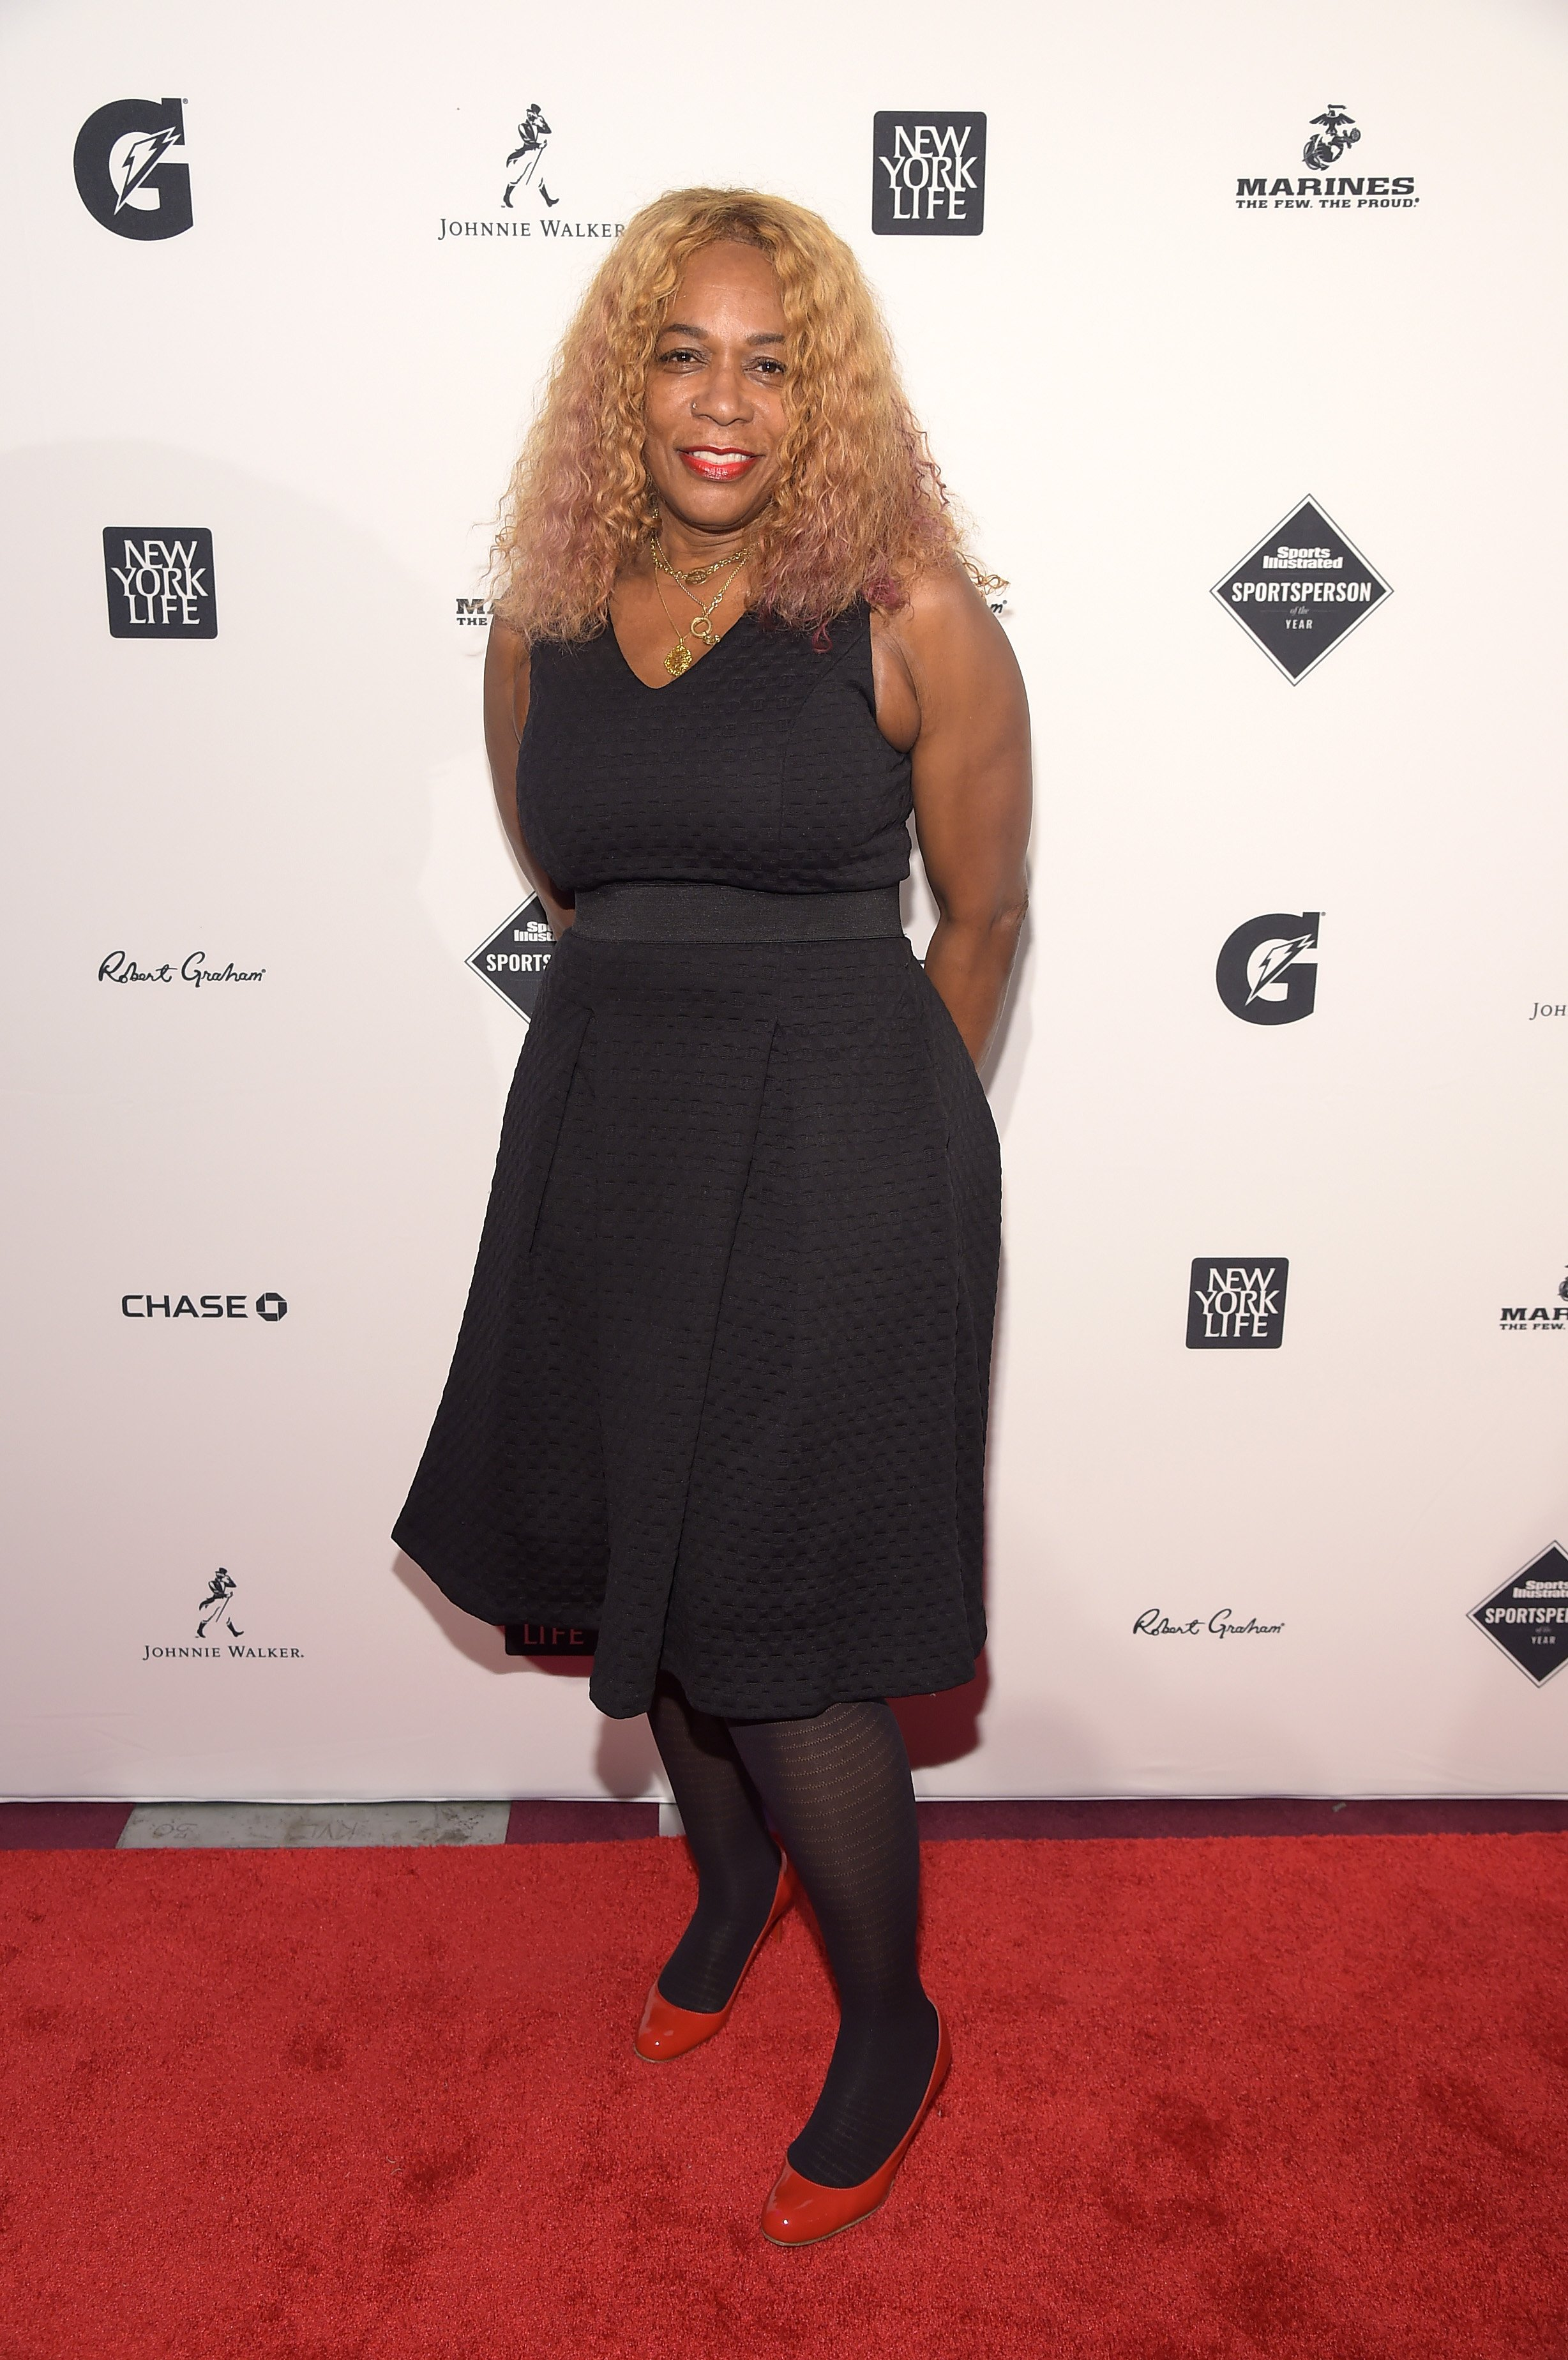 Oracene Price at the Sports Illustrated Sportsperson of the Year Ceremony in 2015 | Photo: Getty Images